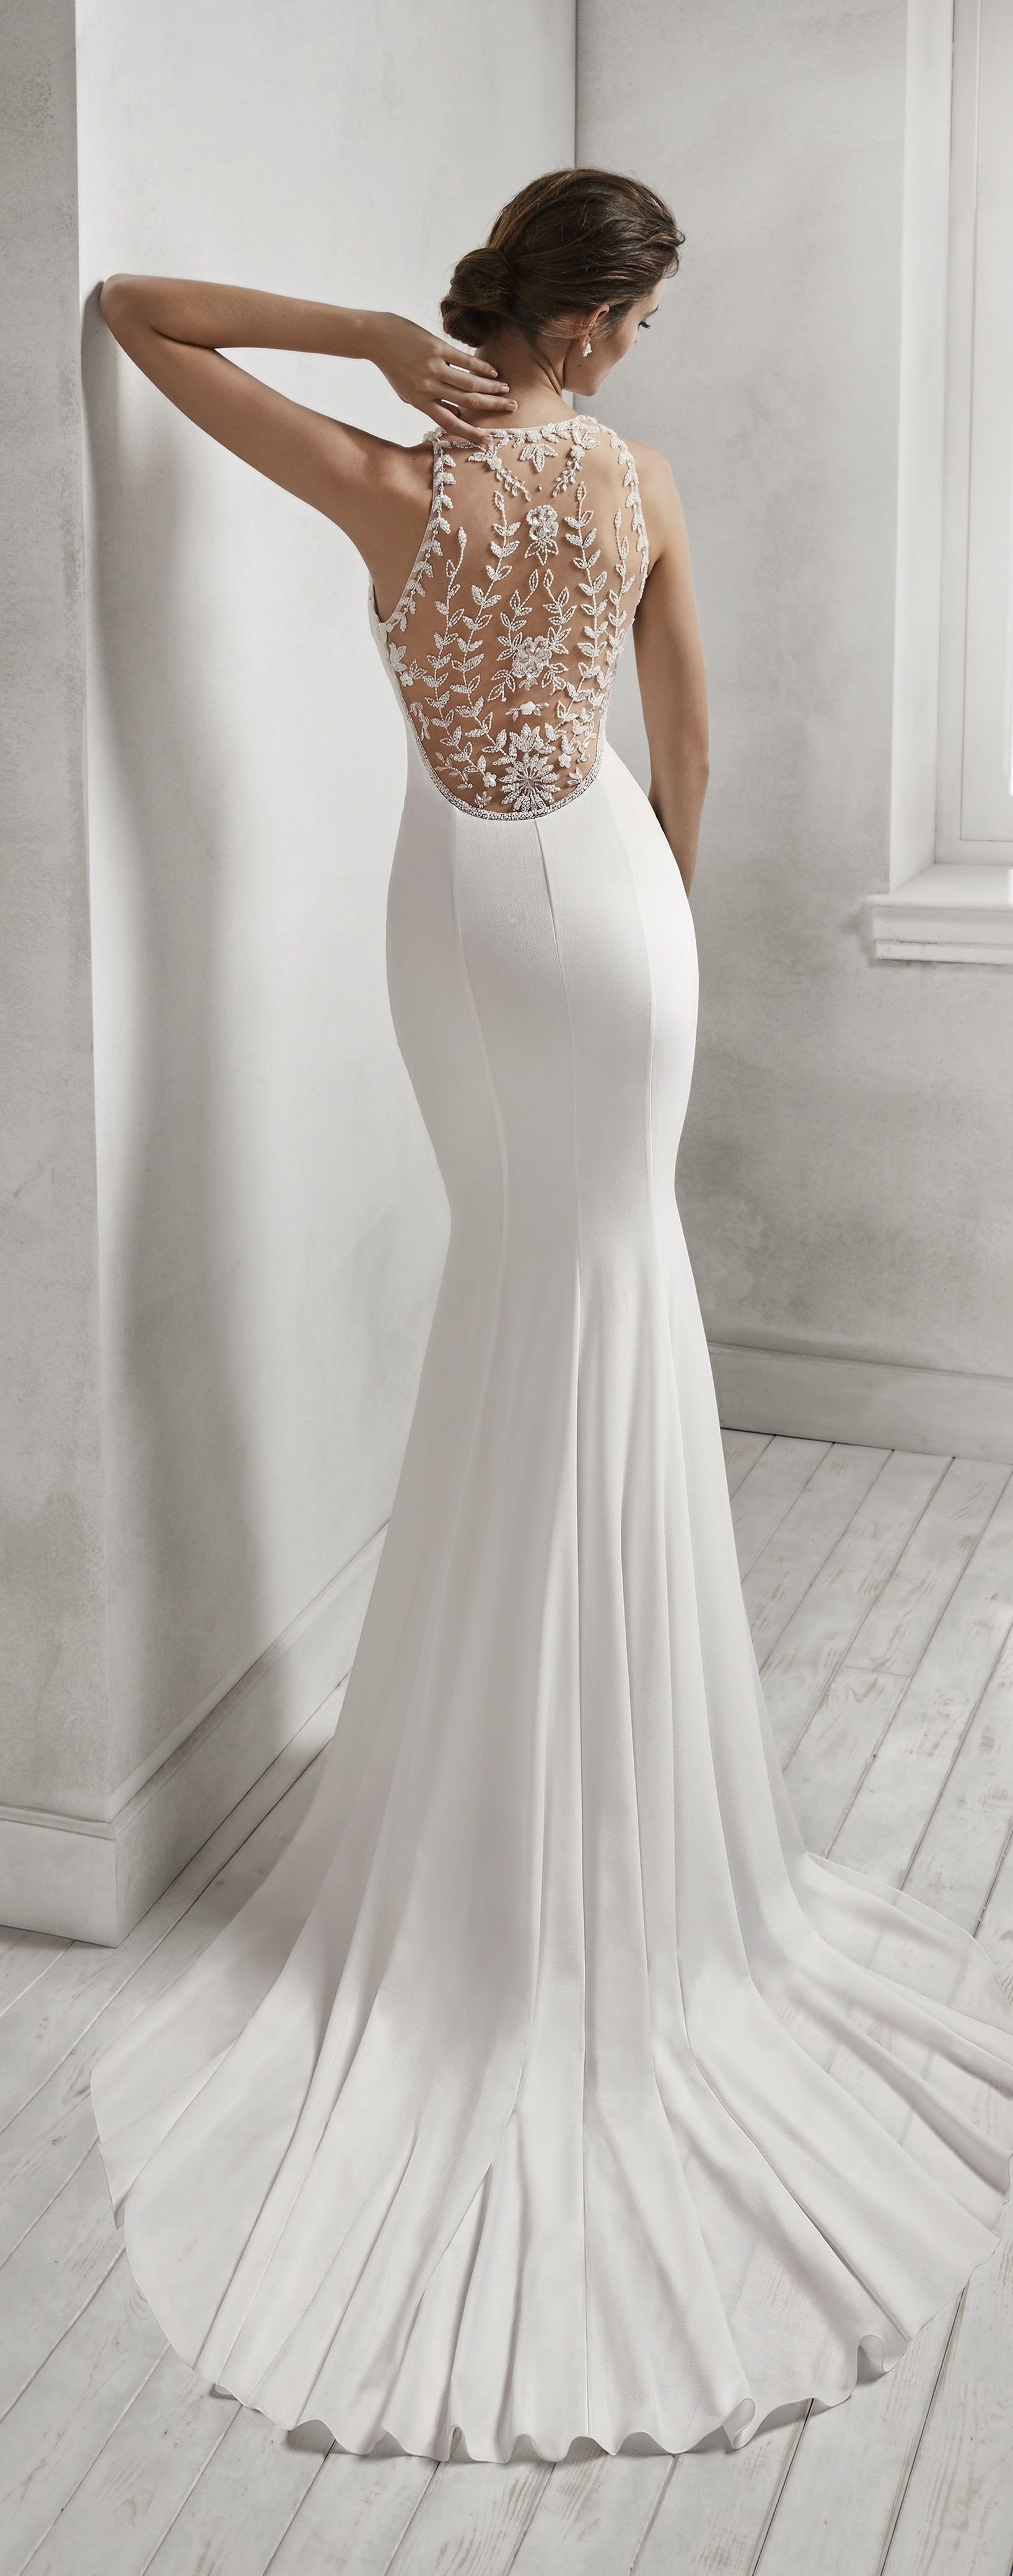 Ad Wedding Dress By Luna Novias Hanna Is A Mermaid Style Crepe Georgette Bridal Gown With Halter Neckline And Wedding Dresses Bridal Gowns Bridal Dresses [ 4157 x 1635 Pixel ]